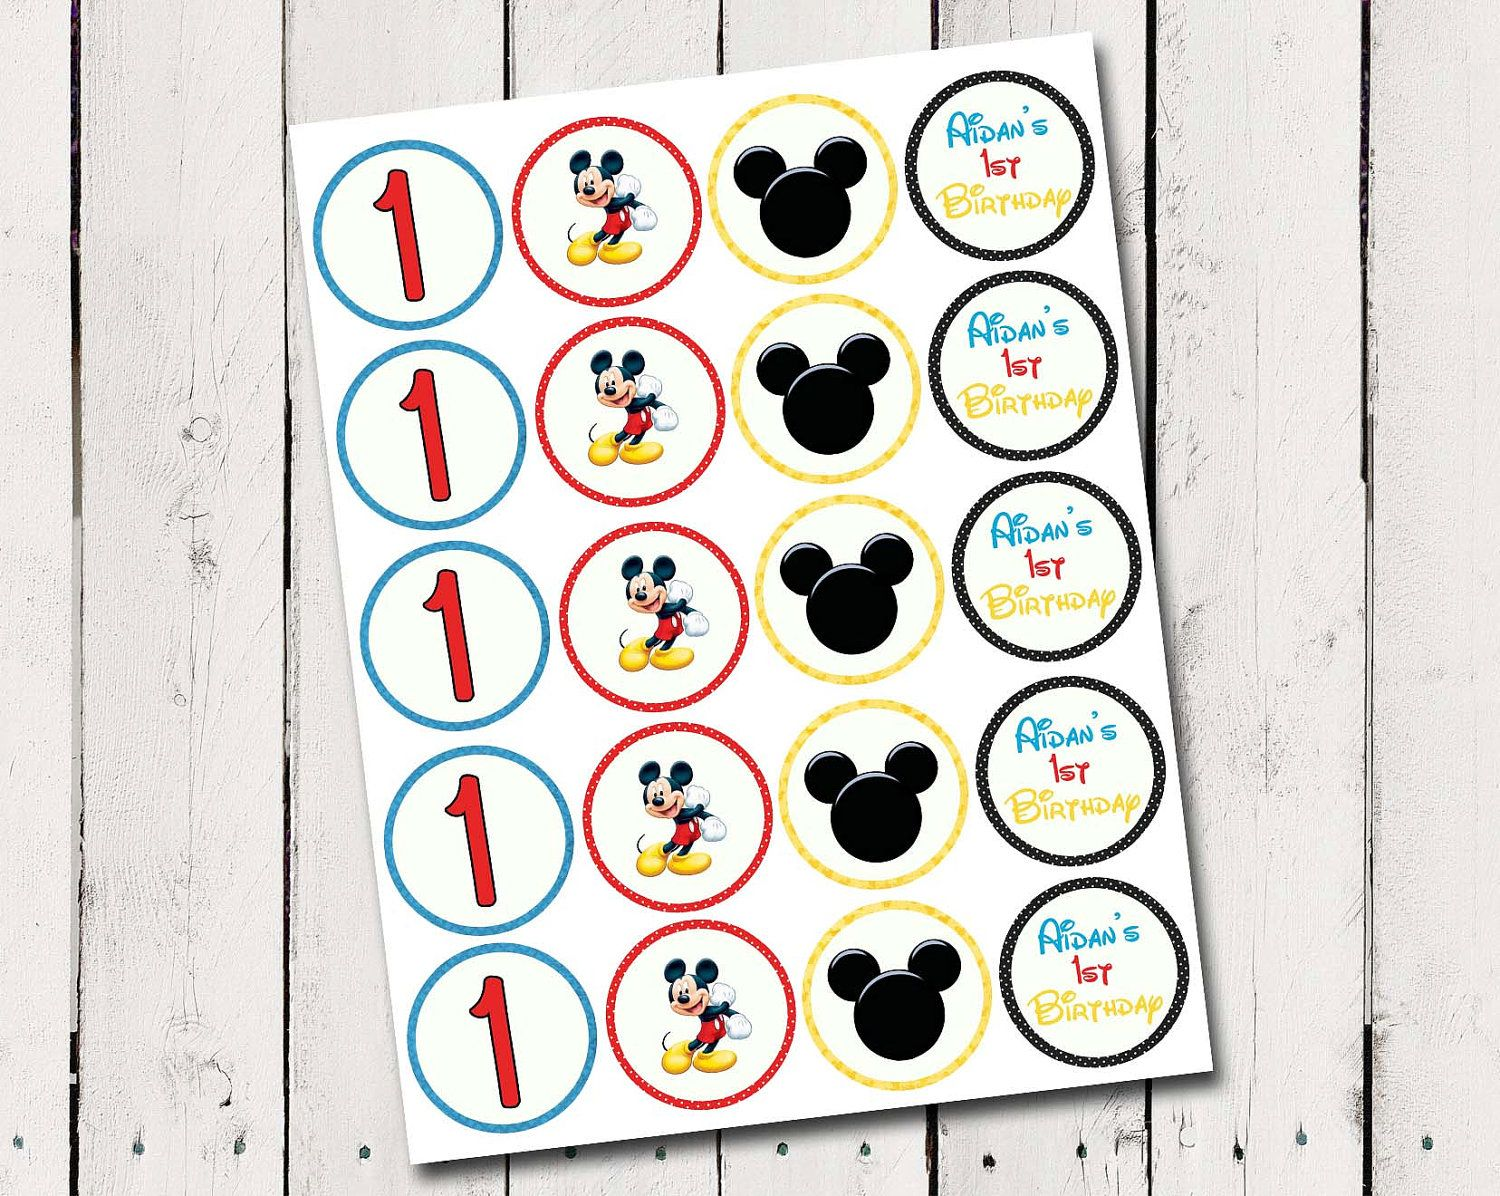 Free Printable Mickey Mouse Cupcake Toppers Mickey Mouse Cupcake Toppers Birthday Perso Mickey Mouse 1st Birthday Mickey Mouse Cupcakes 1st Birthday Cupcakes